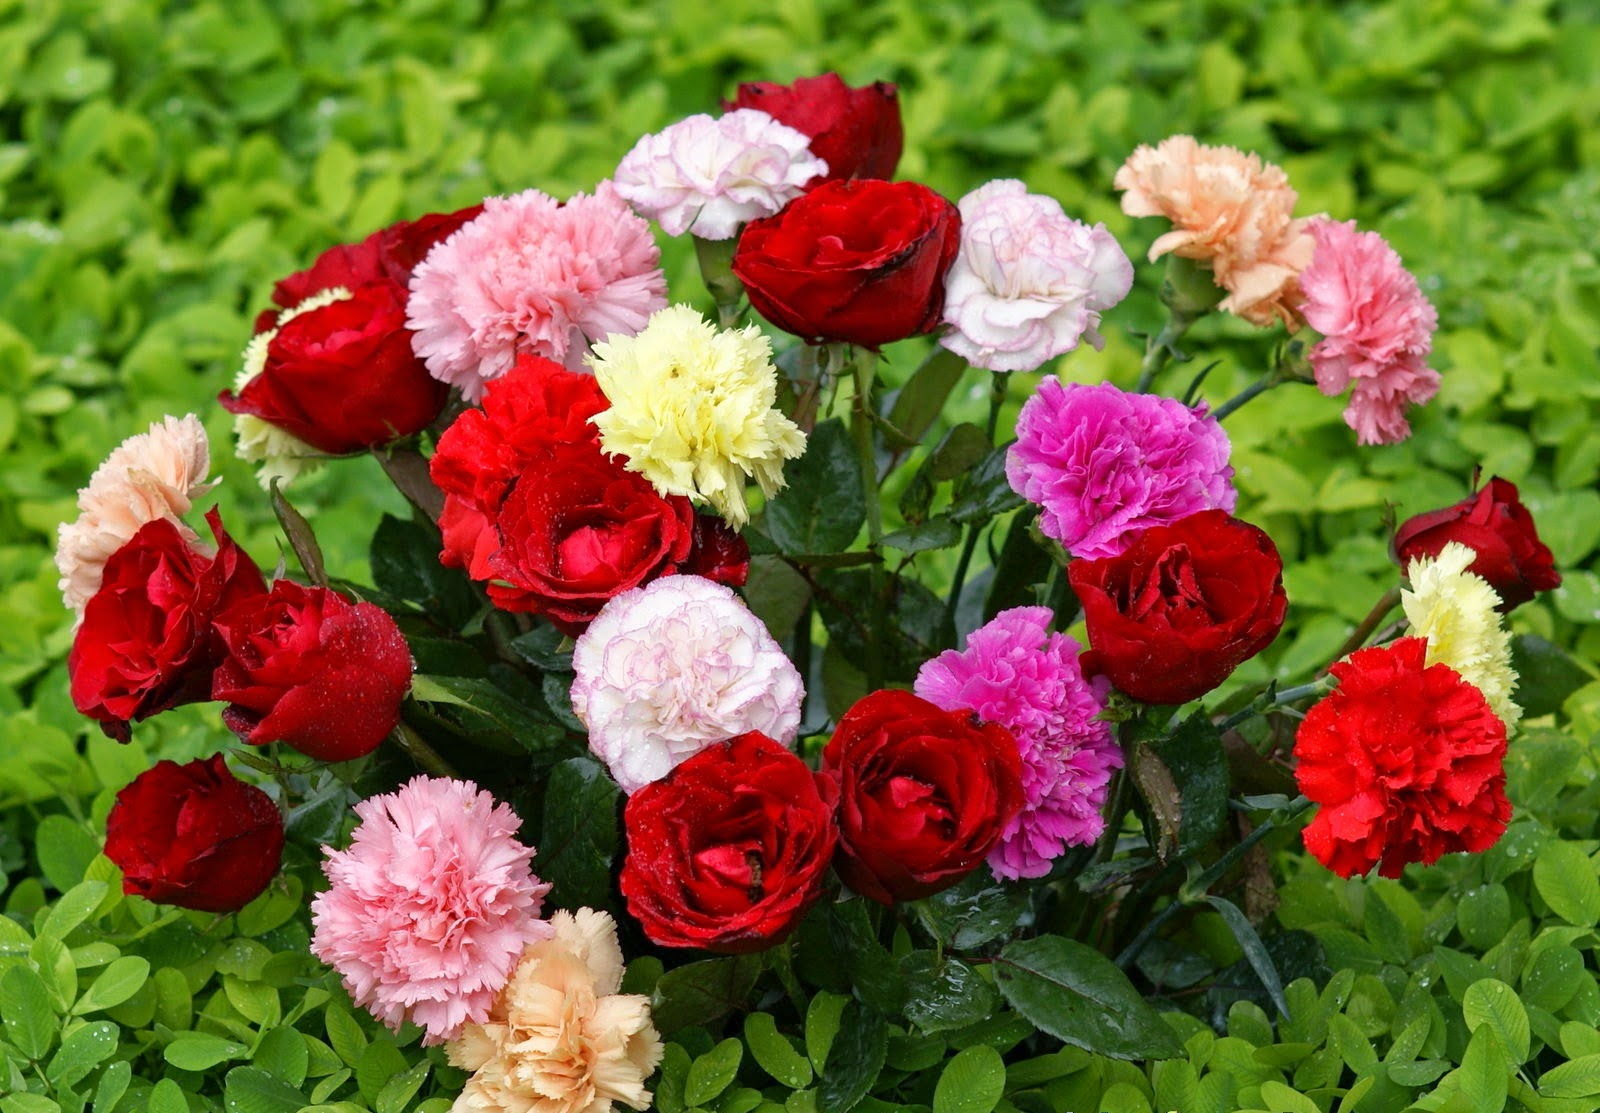 Beautiful flowers image download free all hd wallpapers download beautiful flowers image download izmirmasajfo